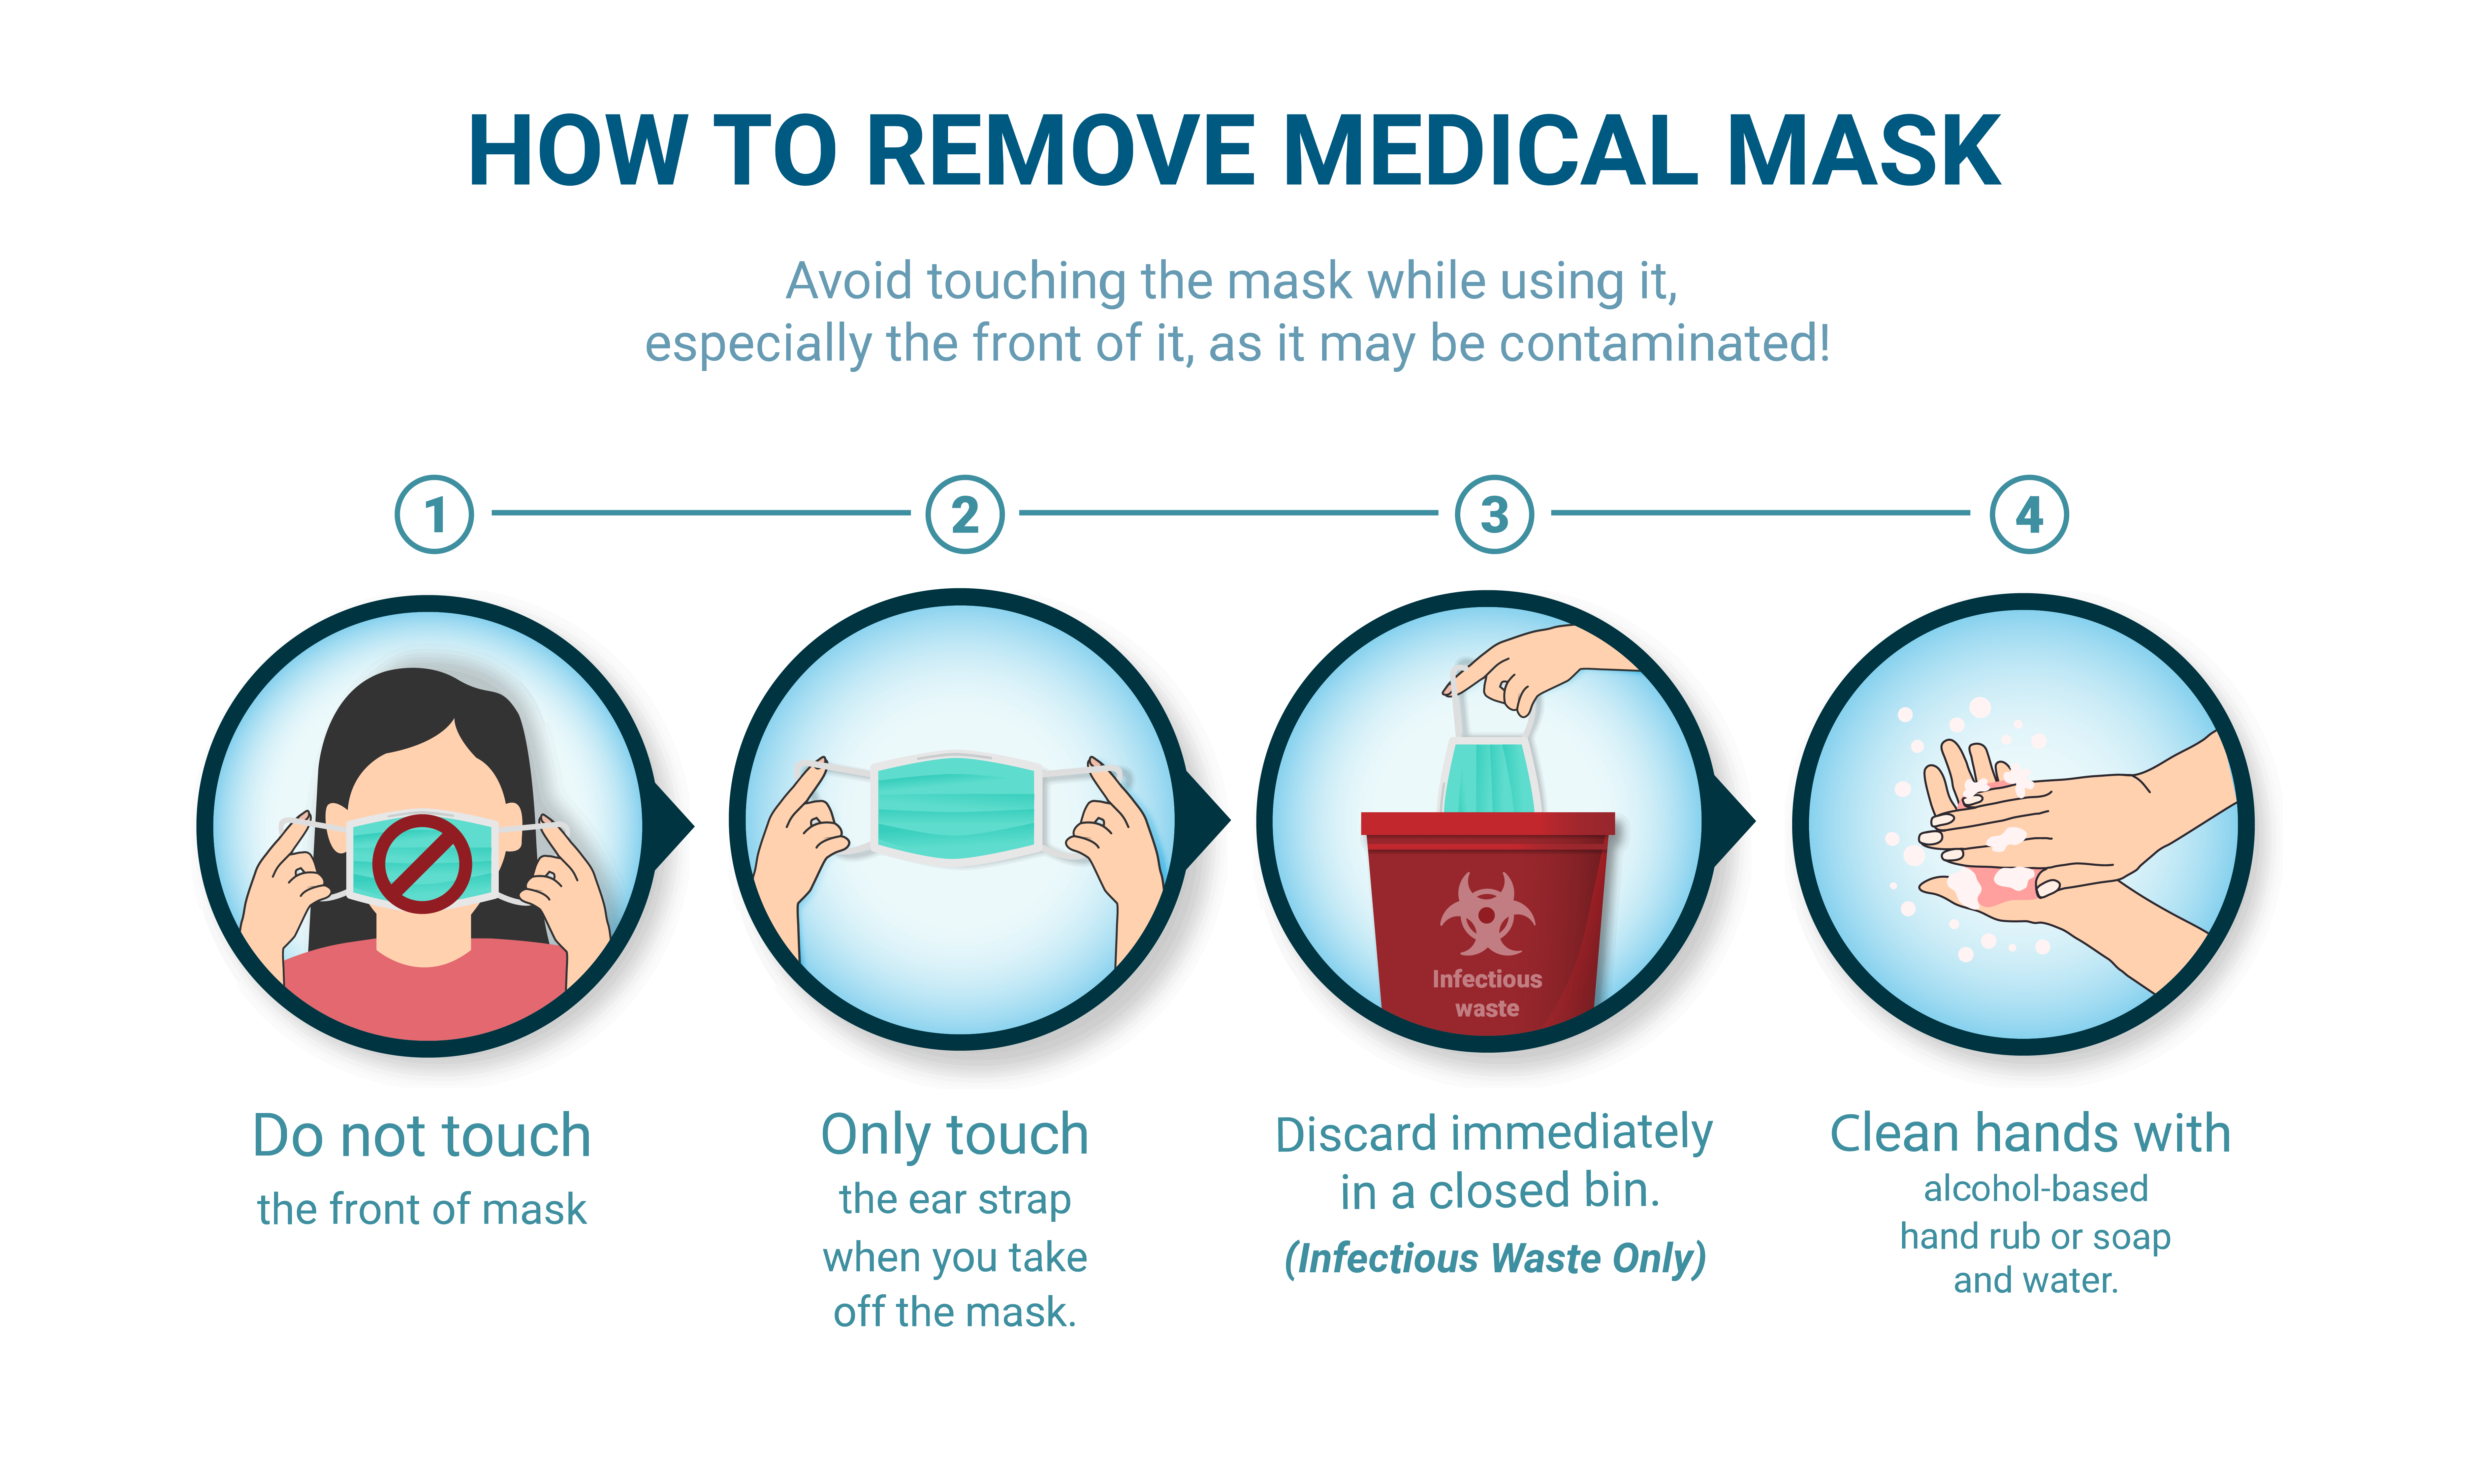 How to remove a medical mask